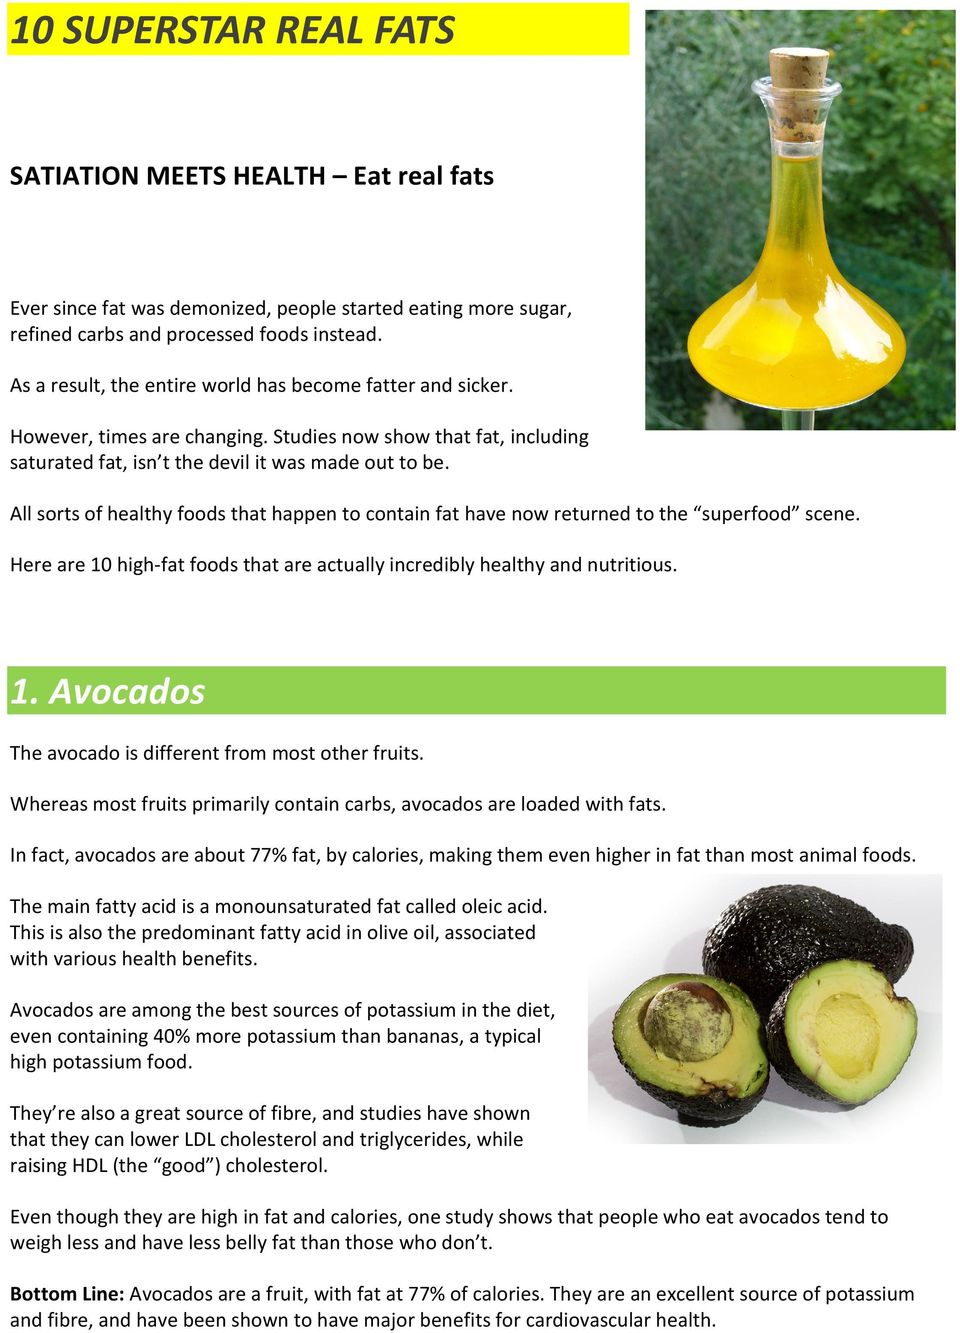 All sorts of healthy foods that happen to contain fat have now returned to the superfood scene. Here are 10 high-fat foods that are actually incredibly healthy and nutritious. 1. Avocados The avocado is different from most other fruits.